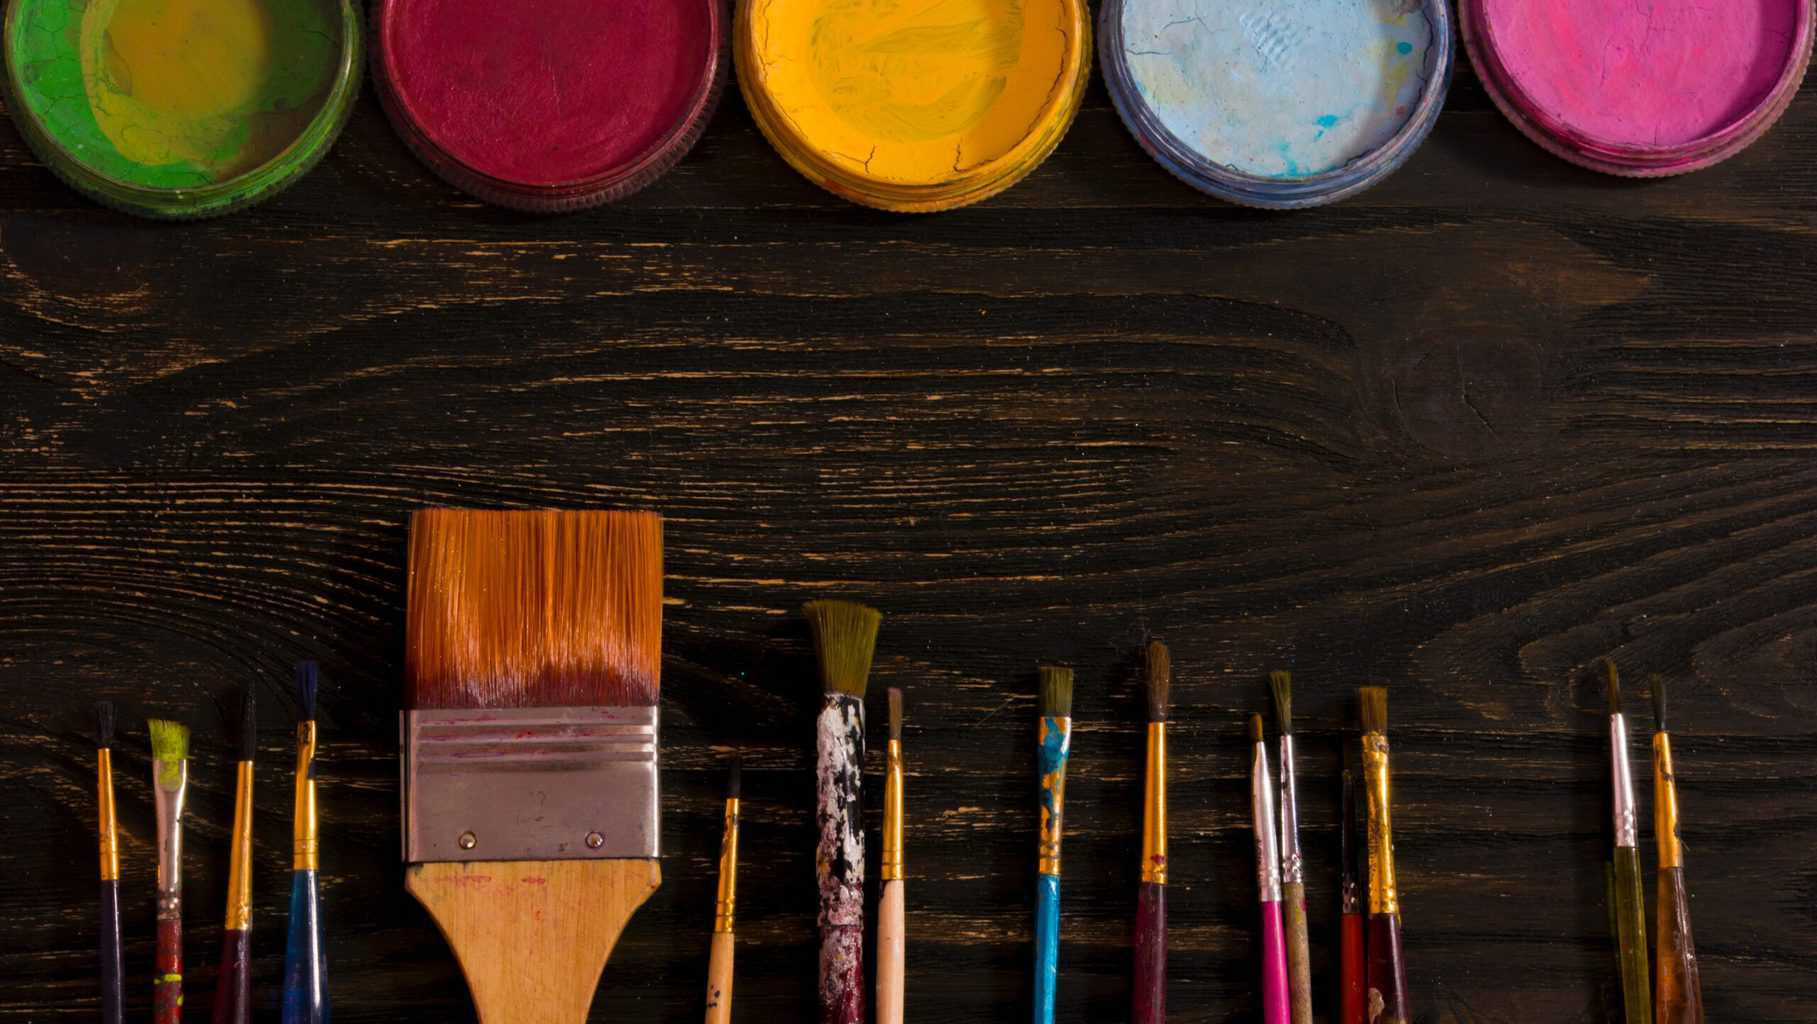 Paint brushes and paint on top of a table